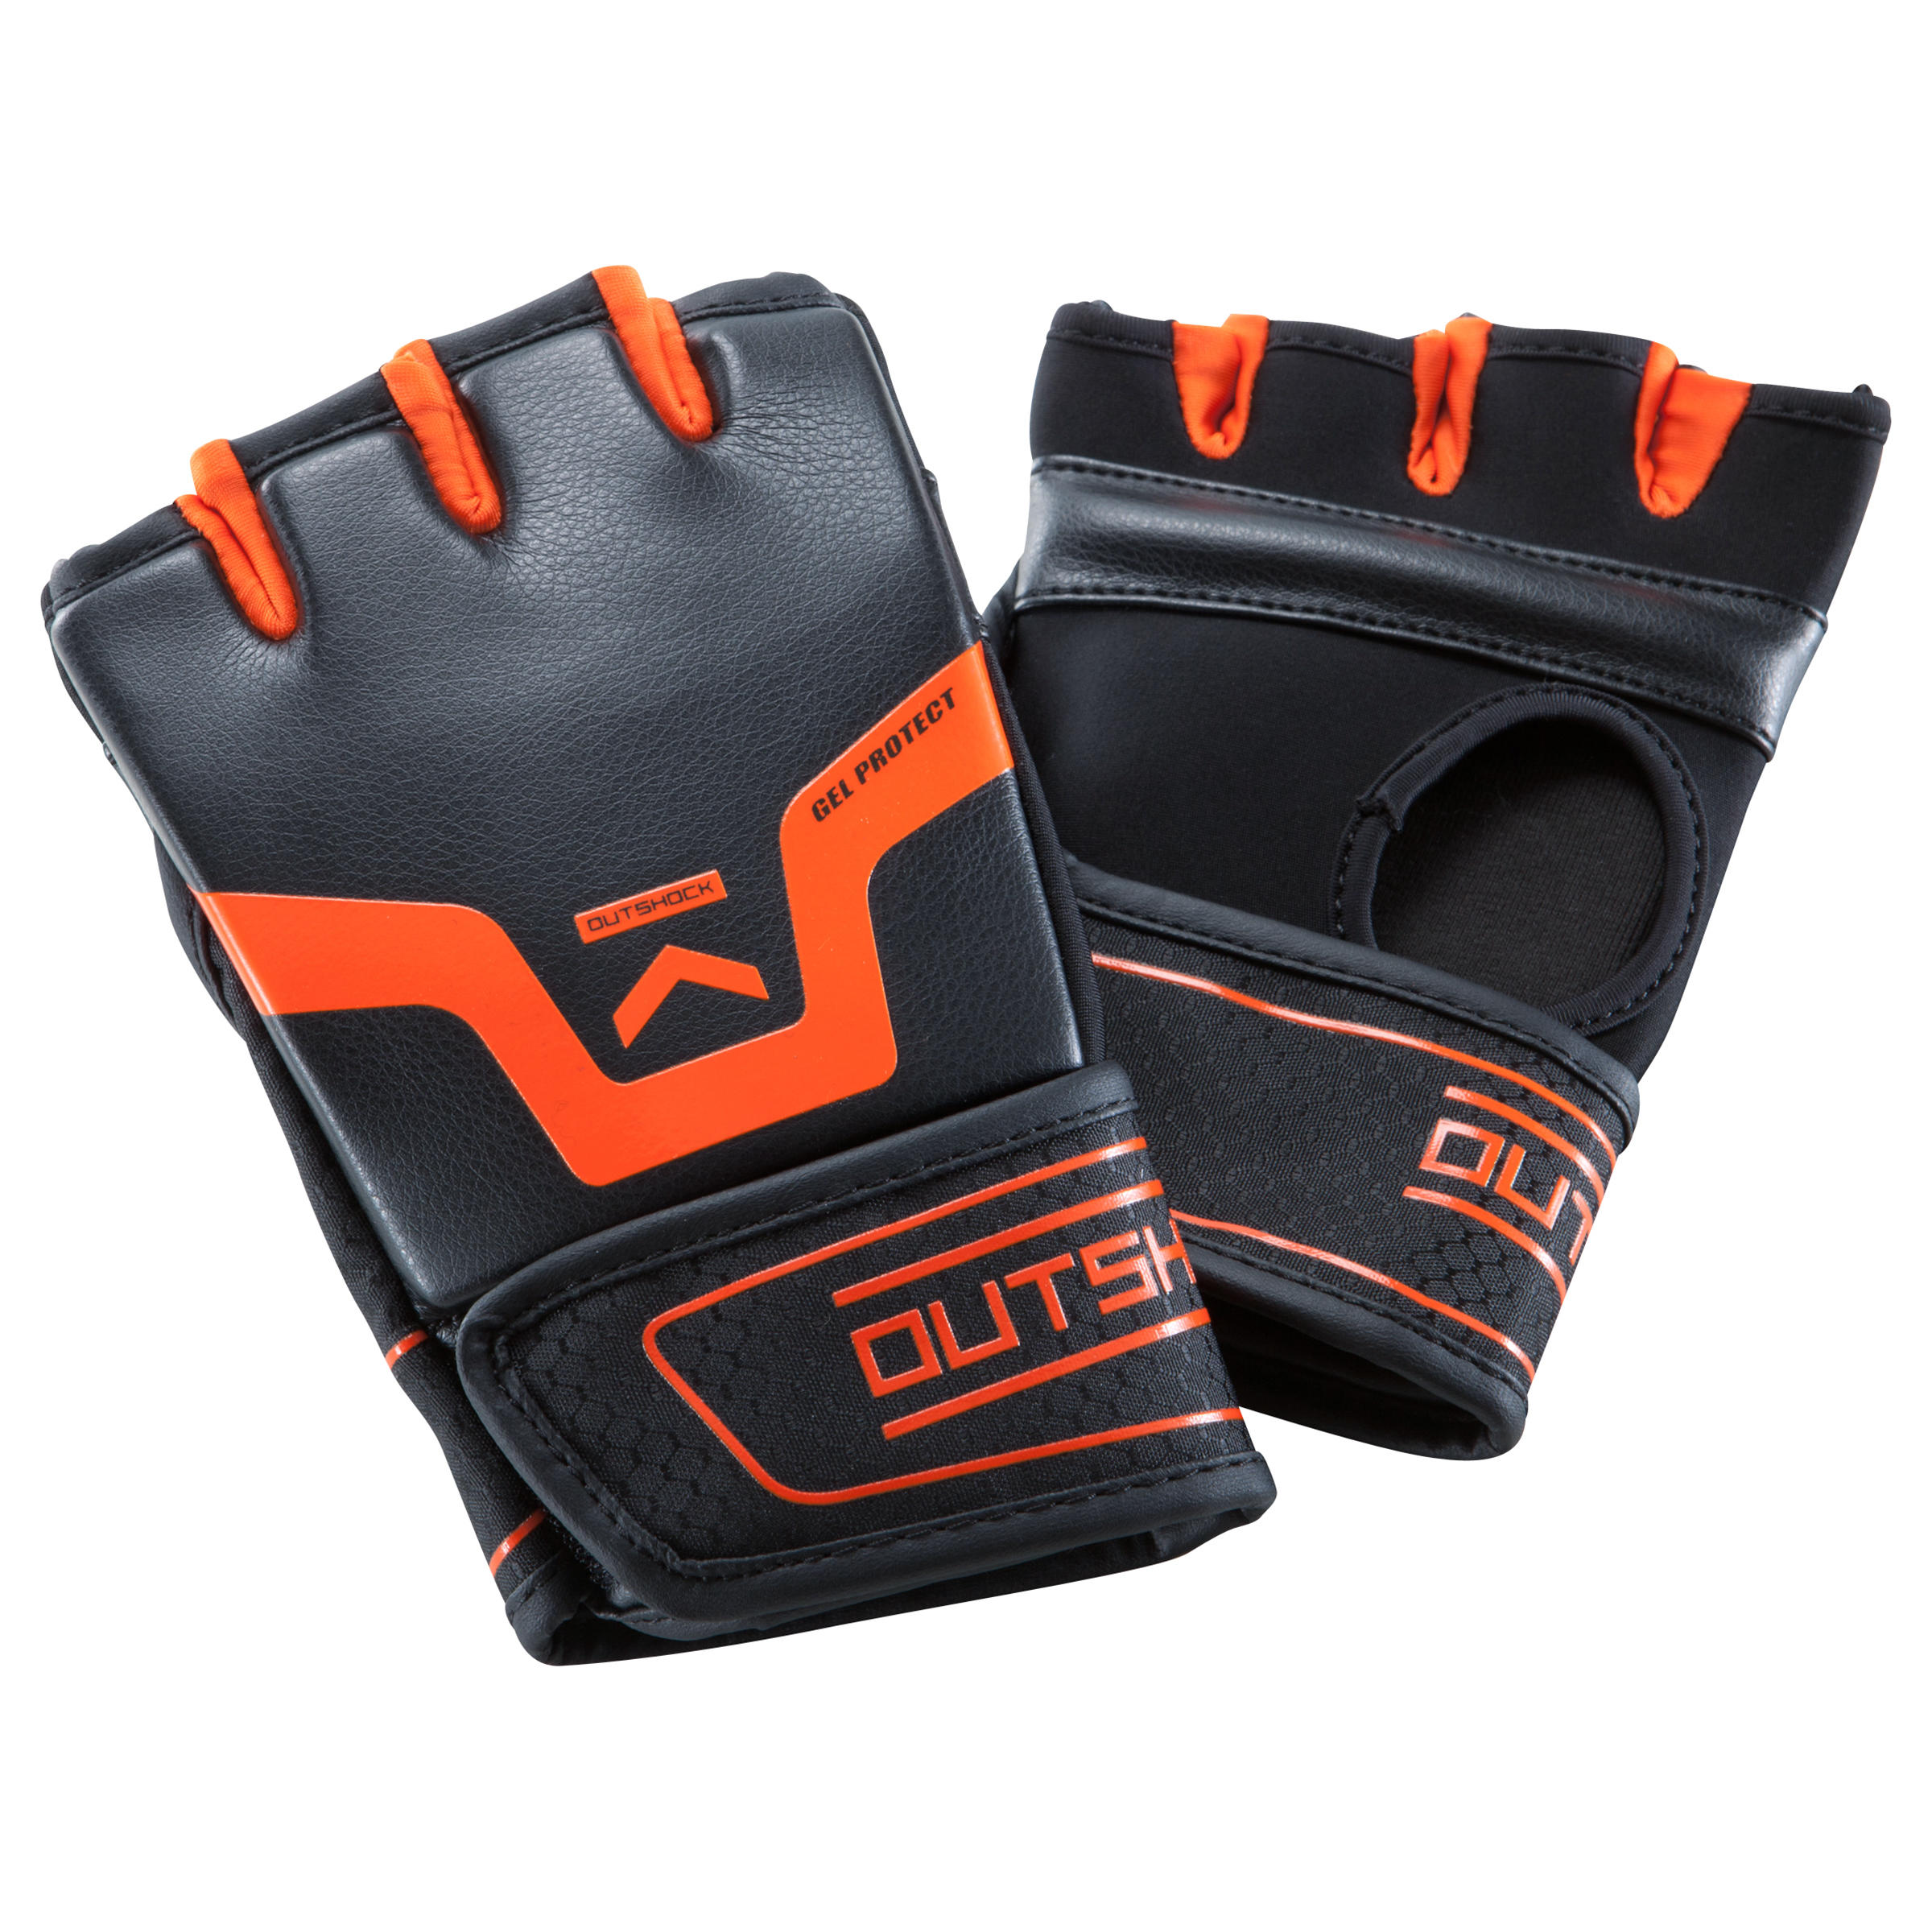 500 Gel Boxing Training Gloves - Black/Orange